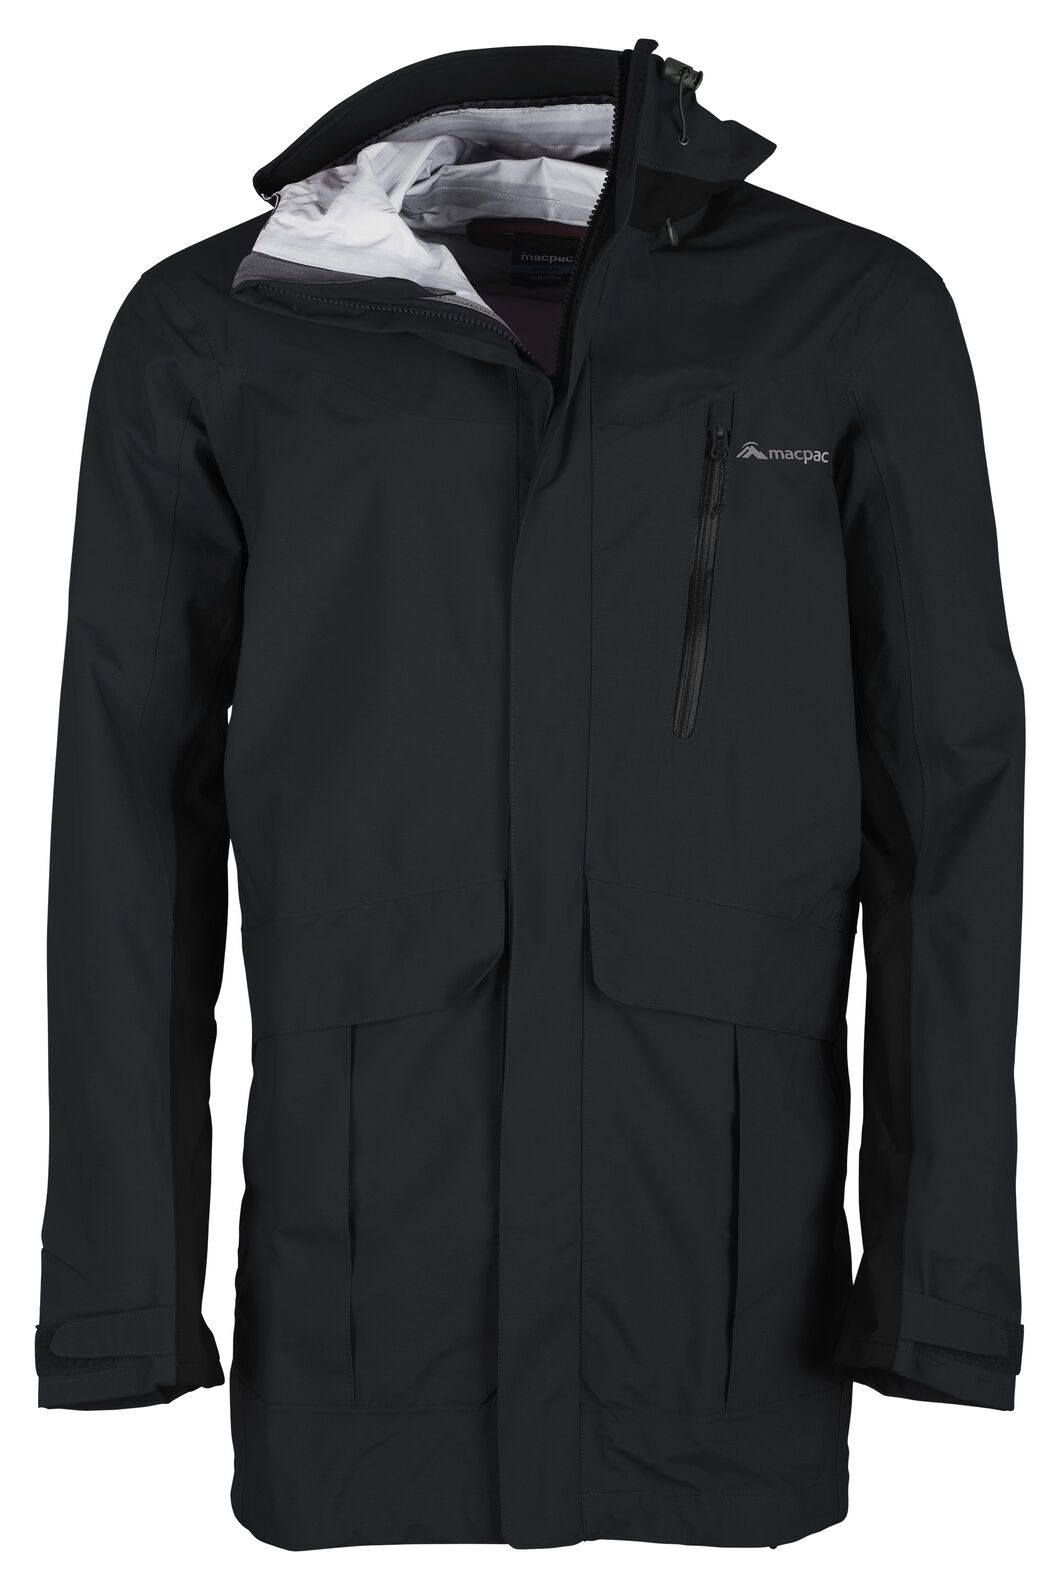 Copland Long Rain Jacket - Men's, Black, hi-res